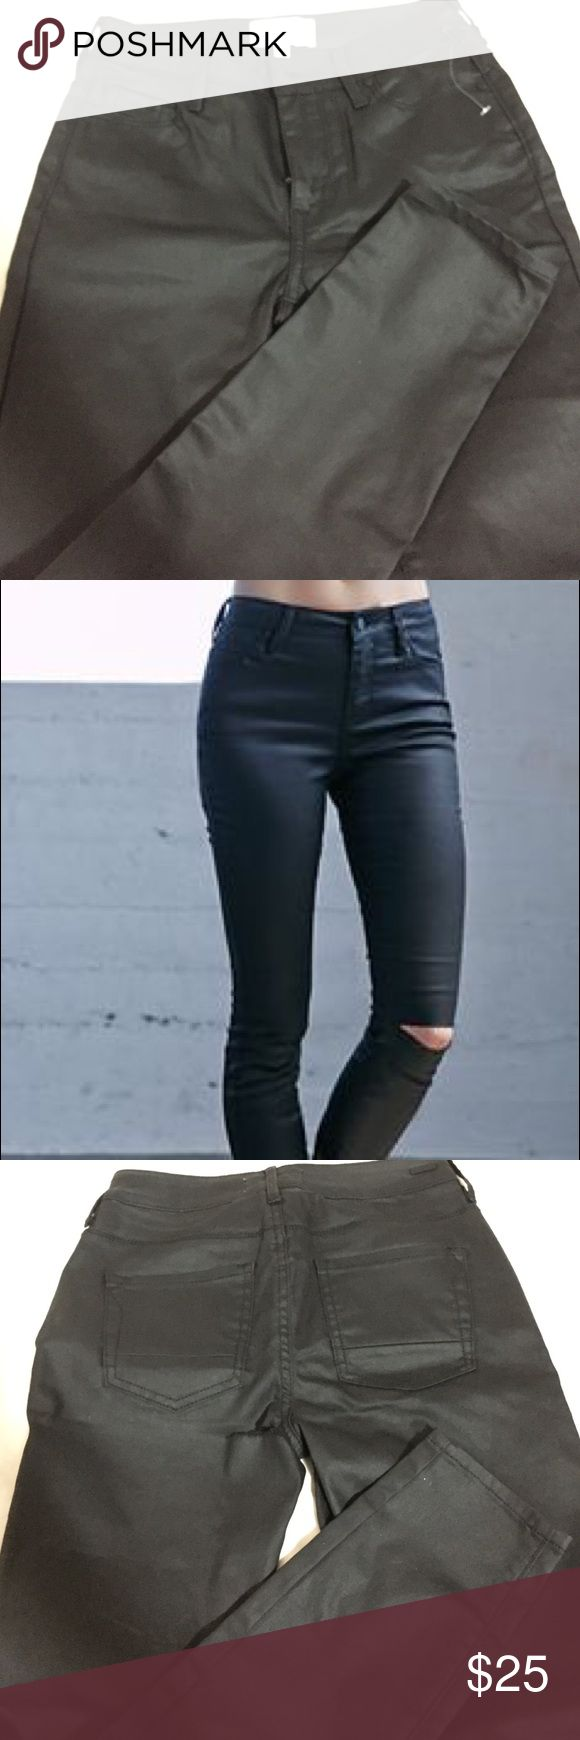 """Kendall Kylie Black Wax Coated Ripped Skinny Jeans High waisted. Knee slits. Wax coated for """"leather-like"""" effect. These are unworn, but has a rip near the back pockets. Kendall & Kylie Jeans Skinny"""